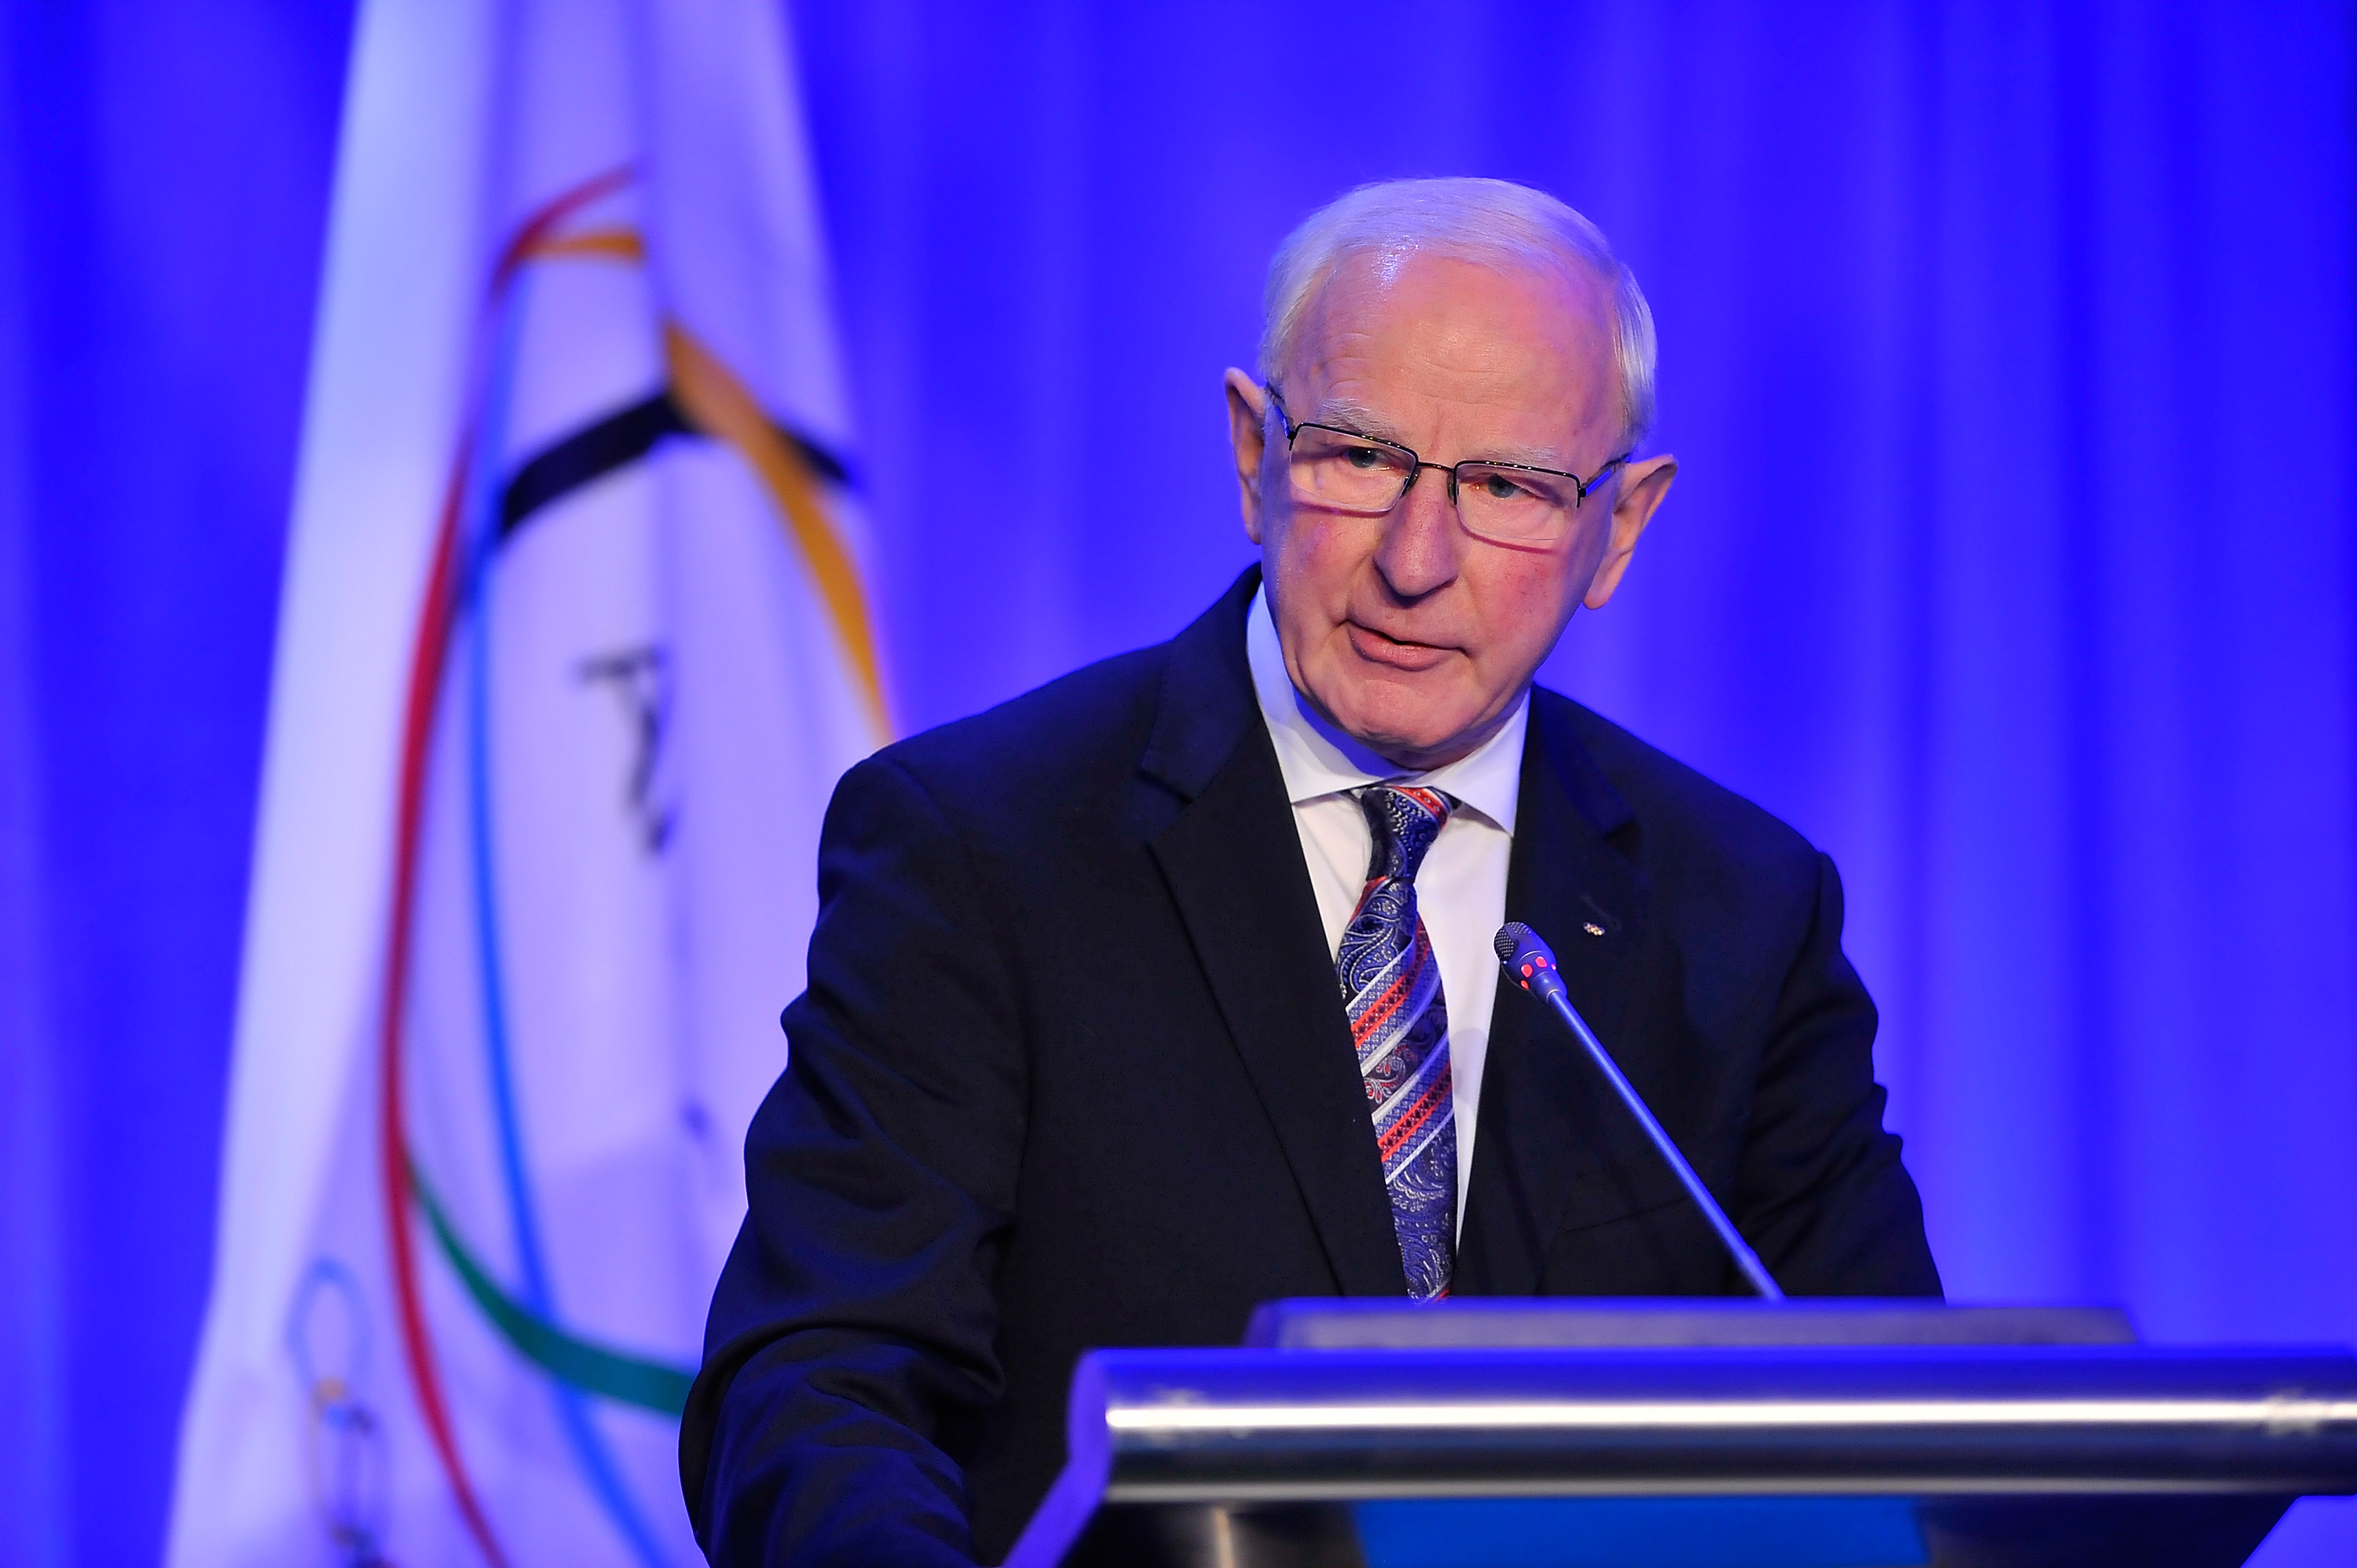 Patrick Hickey speaks at the XX ANOC General Assembly 2015 at the Hilton Hotel on Oct. 29, 2015, in Washington, D.C.